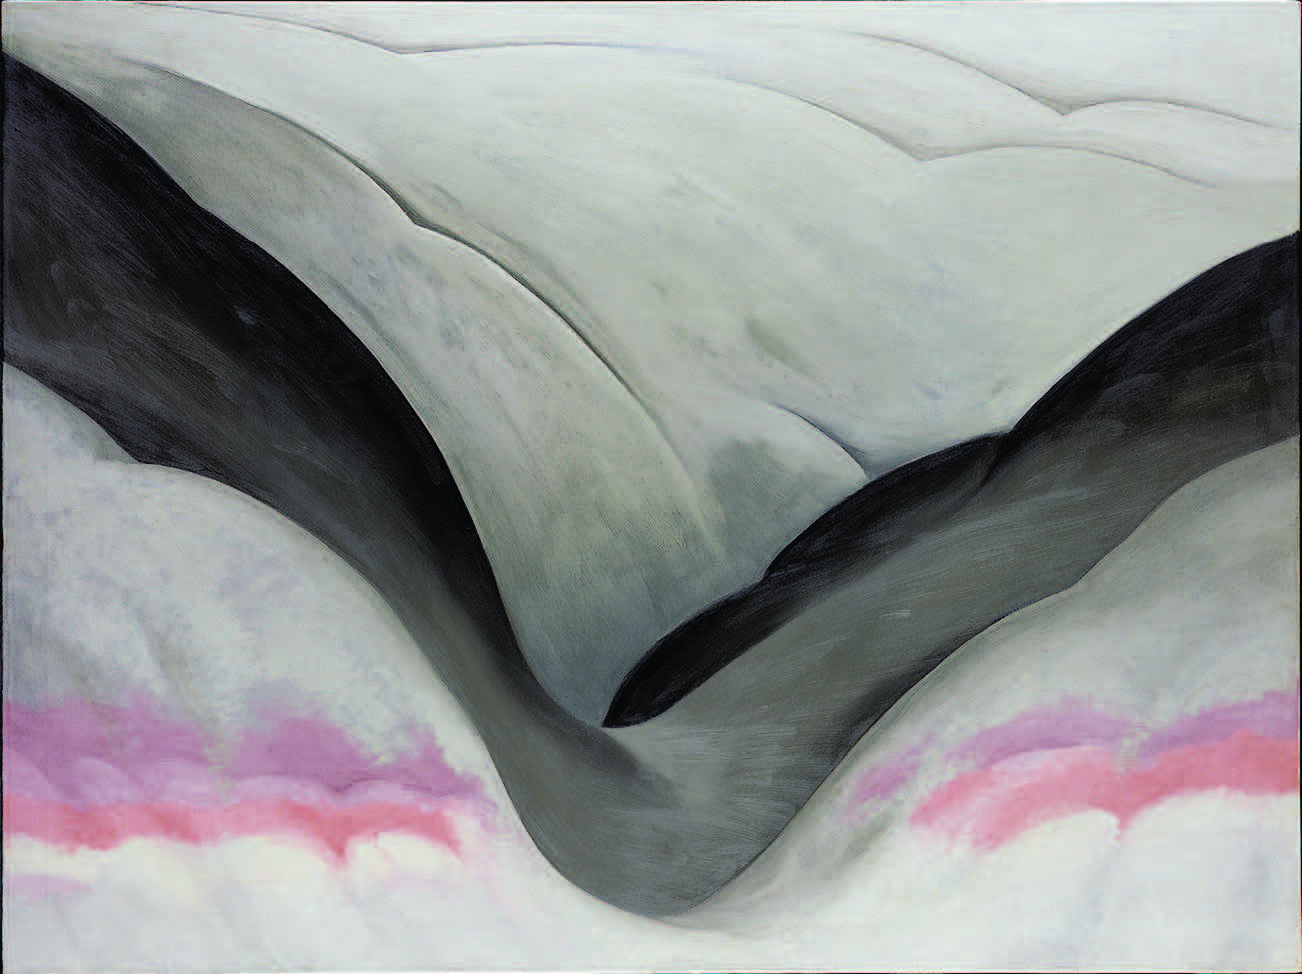 Georgia O'Keeffe (1887–1986), Black Place, Grey and Pink, 1949. Oil on canvas, 36 × 48 in. (91.4 × 121.9 cm). Georgia O'Keeffe Museum. Gift of the Burnett Foundation (1997.06.030). © Georgia O'Keeffe Museum.